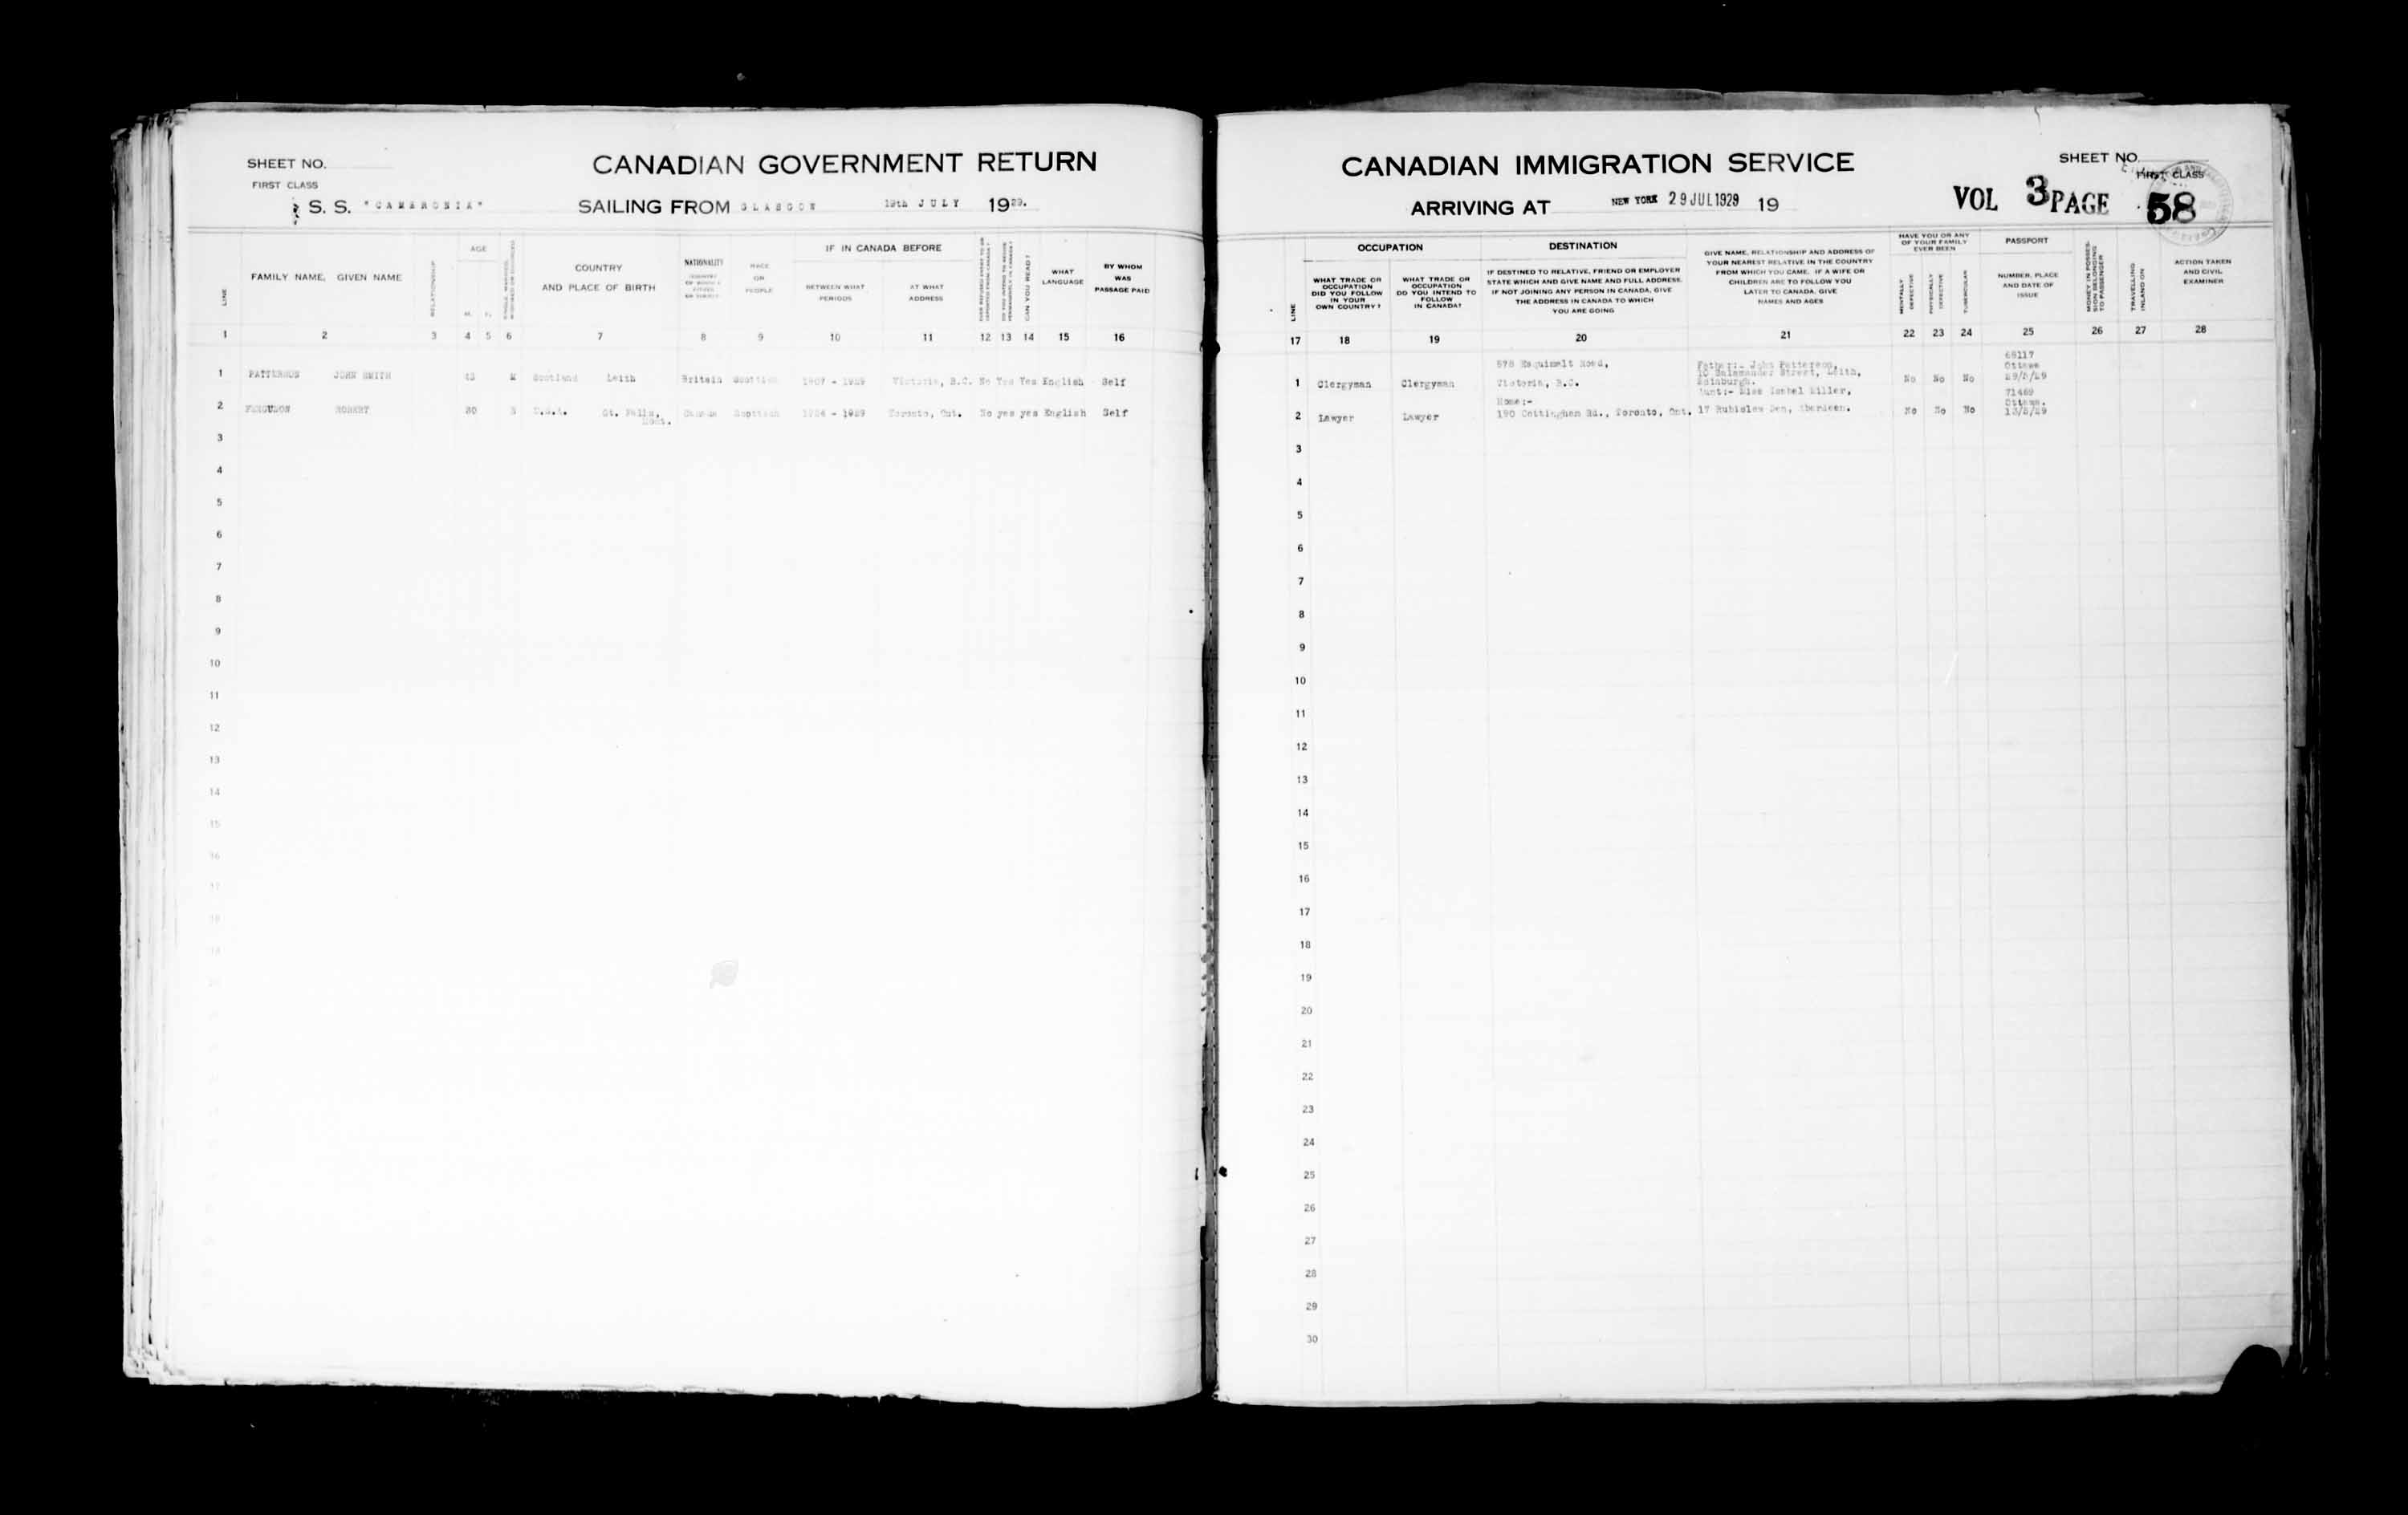 Title: Passenger Lists: New York (1925-1935) - Mikan Number: 161343 - Microform: t-14935